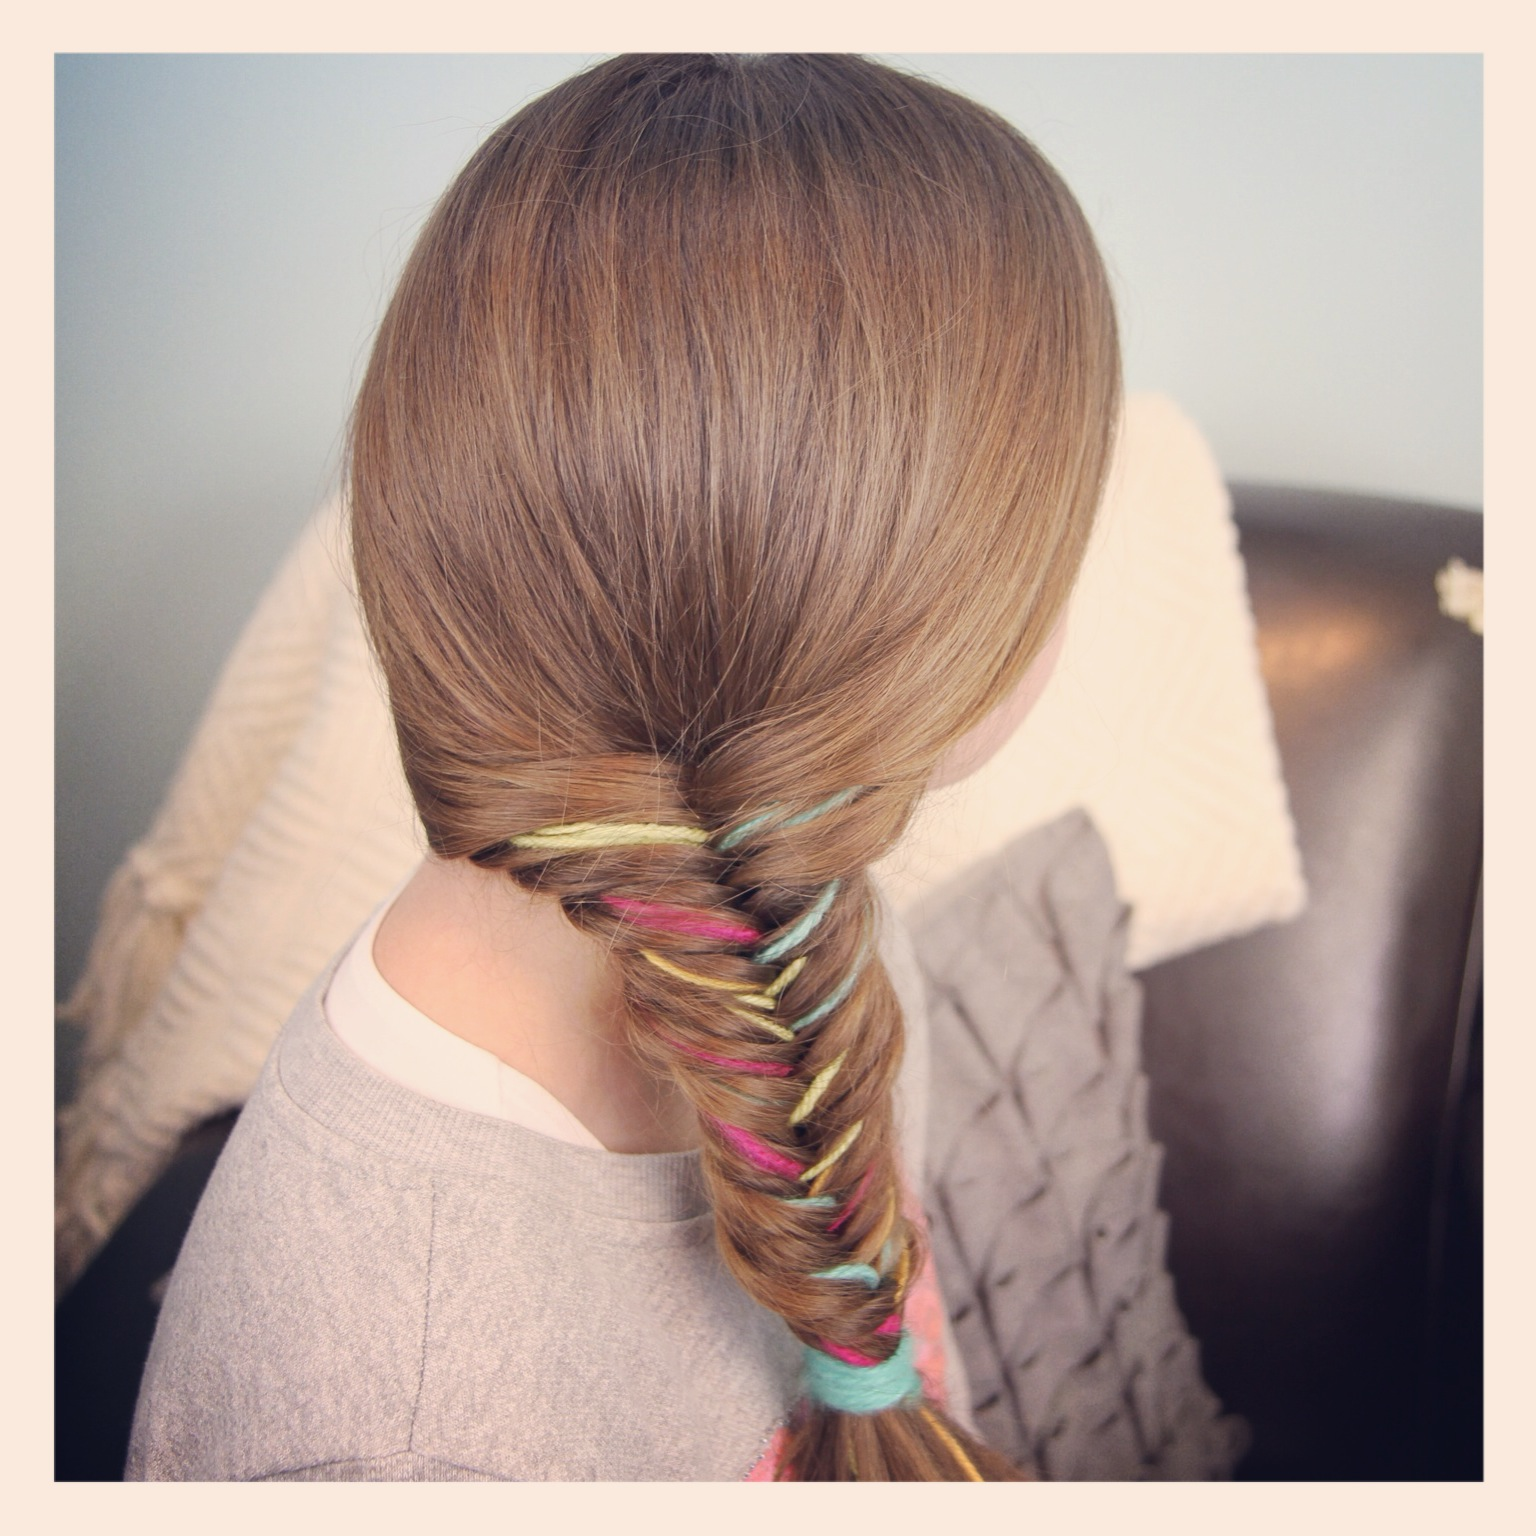 Yarn Extension Fishtail Braid Temporary Color Highlights